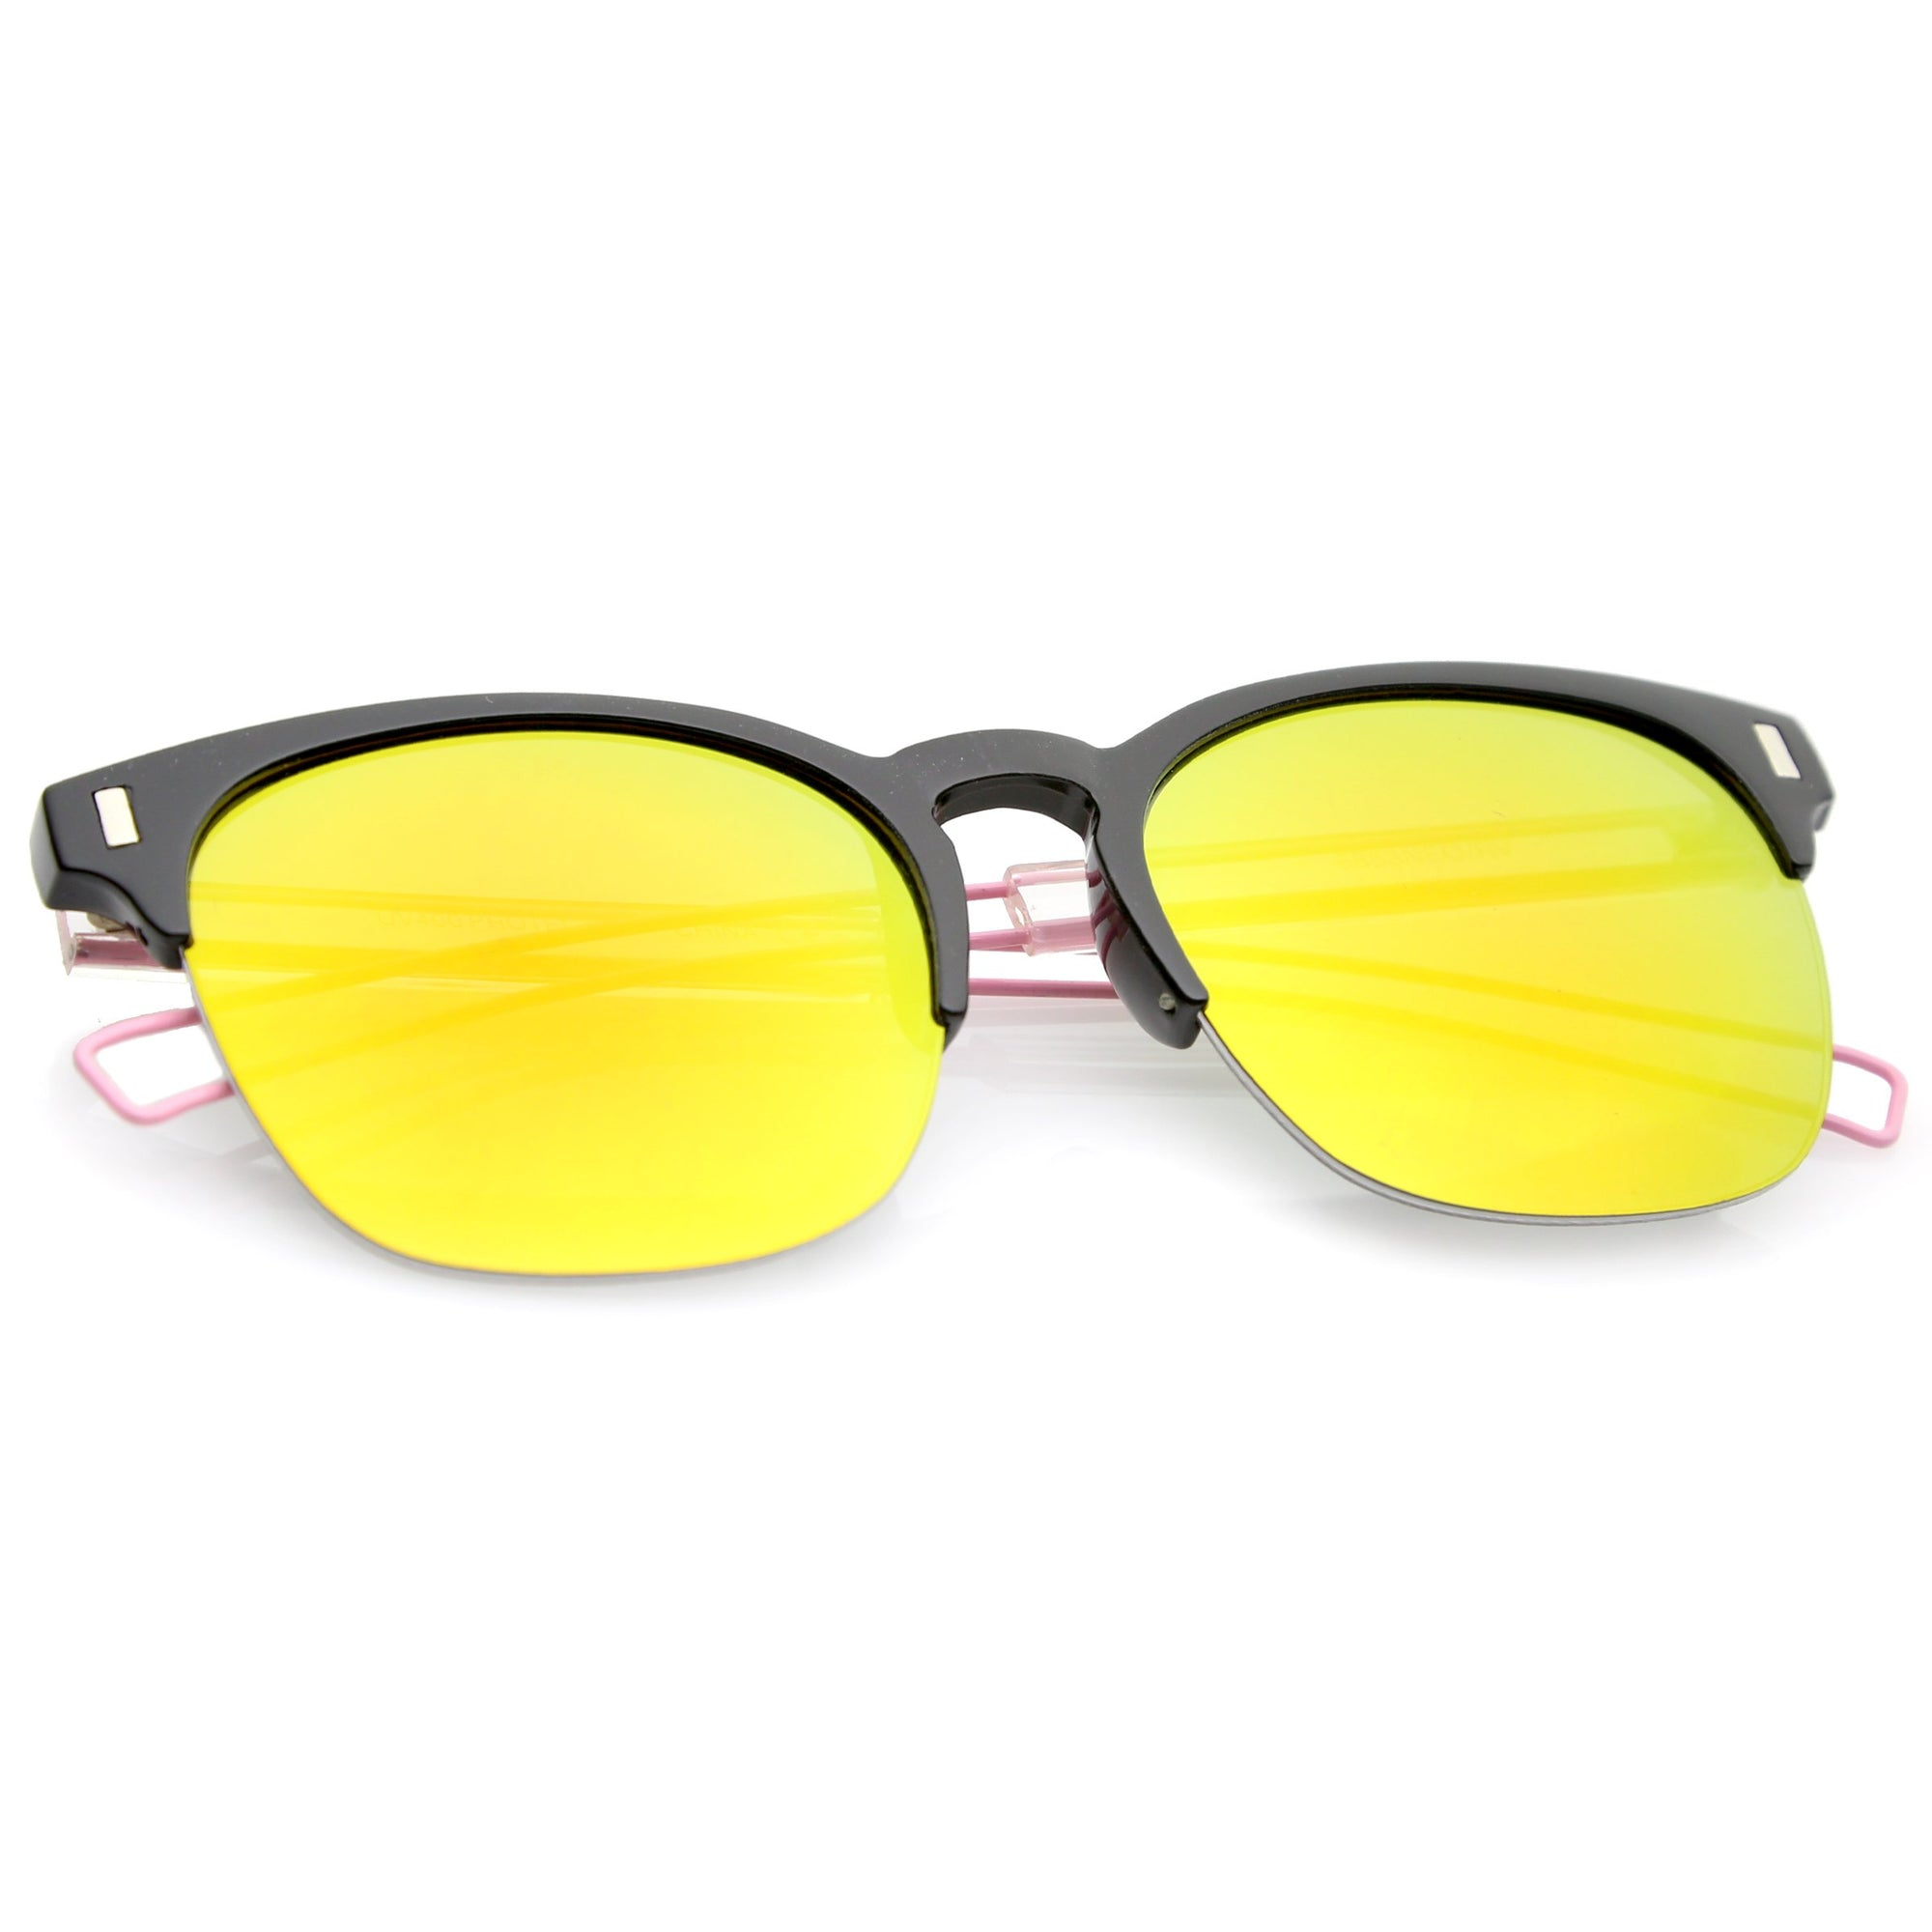 24c96eb0561 Retro Modern Wire Temple Half Frame Mirrored Flat Lens Sunglasses ...